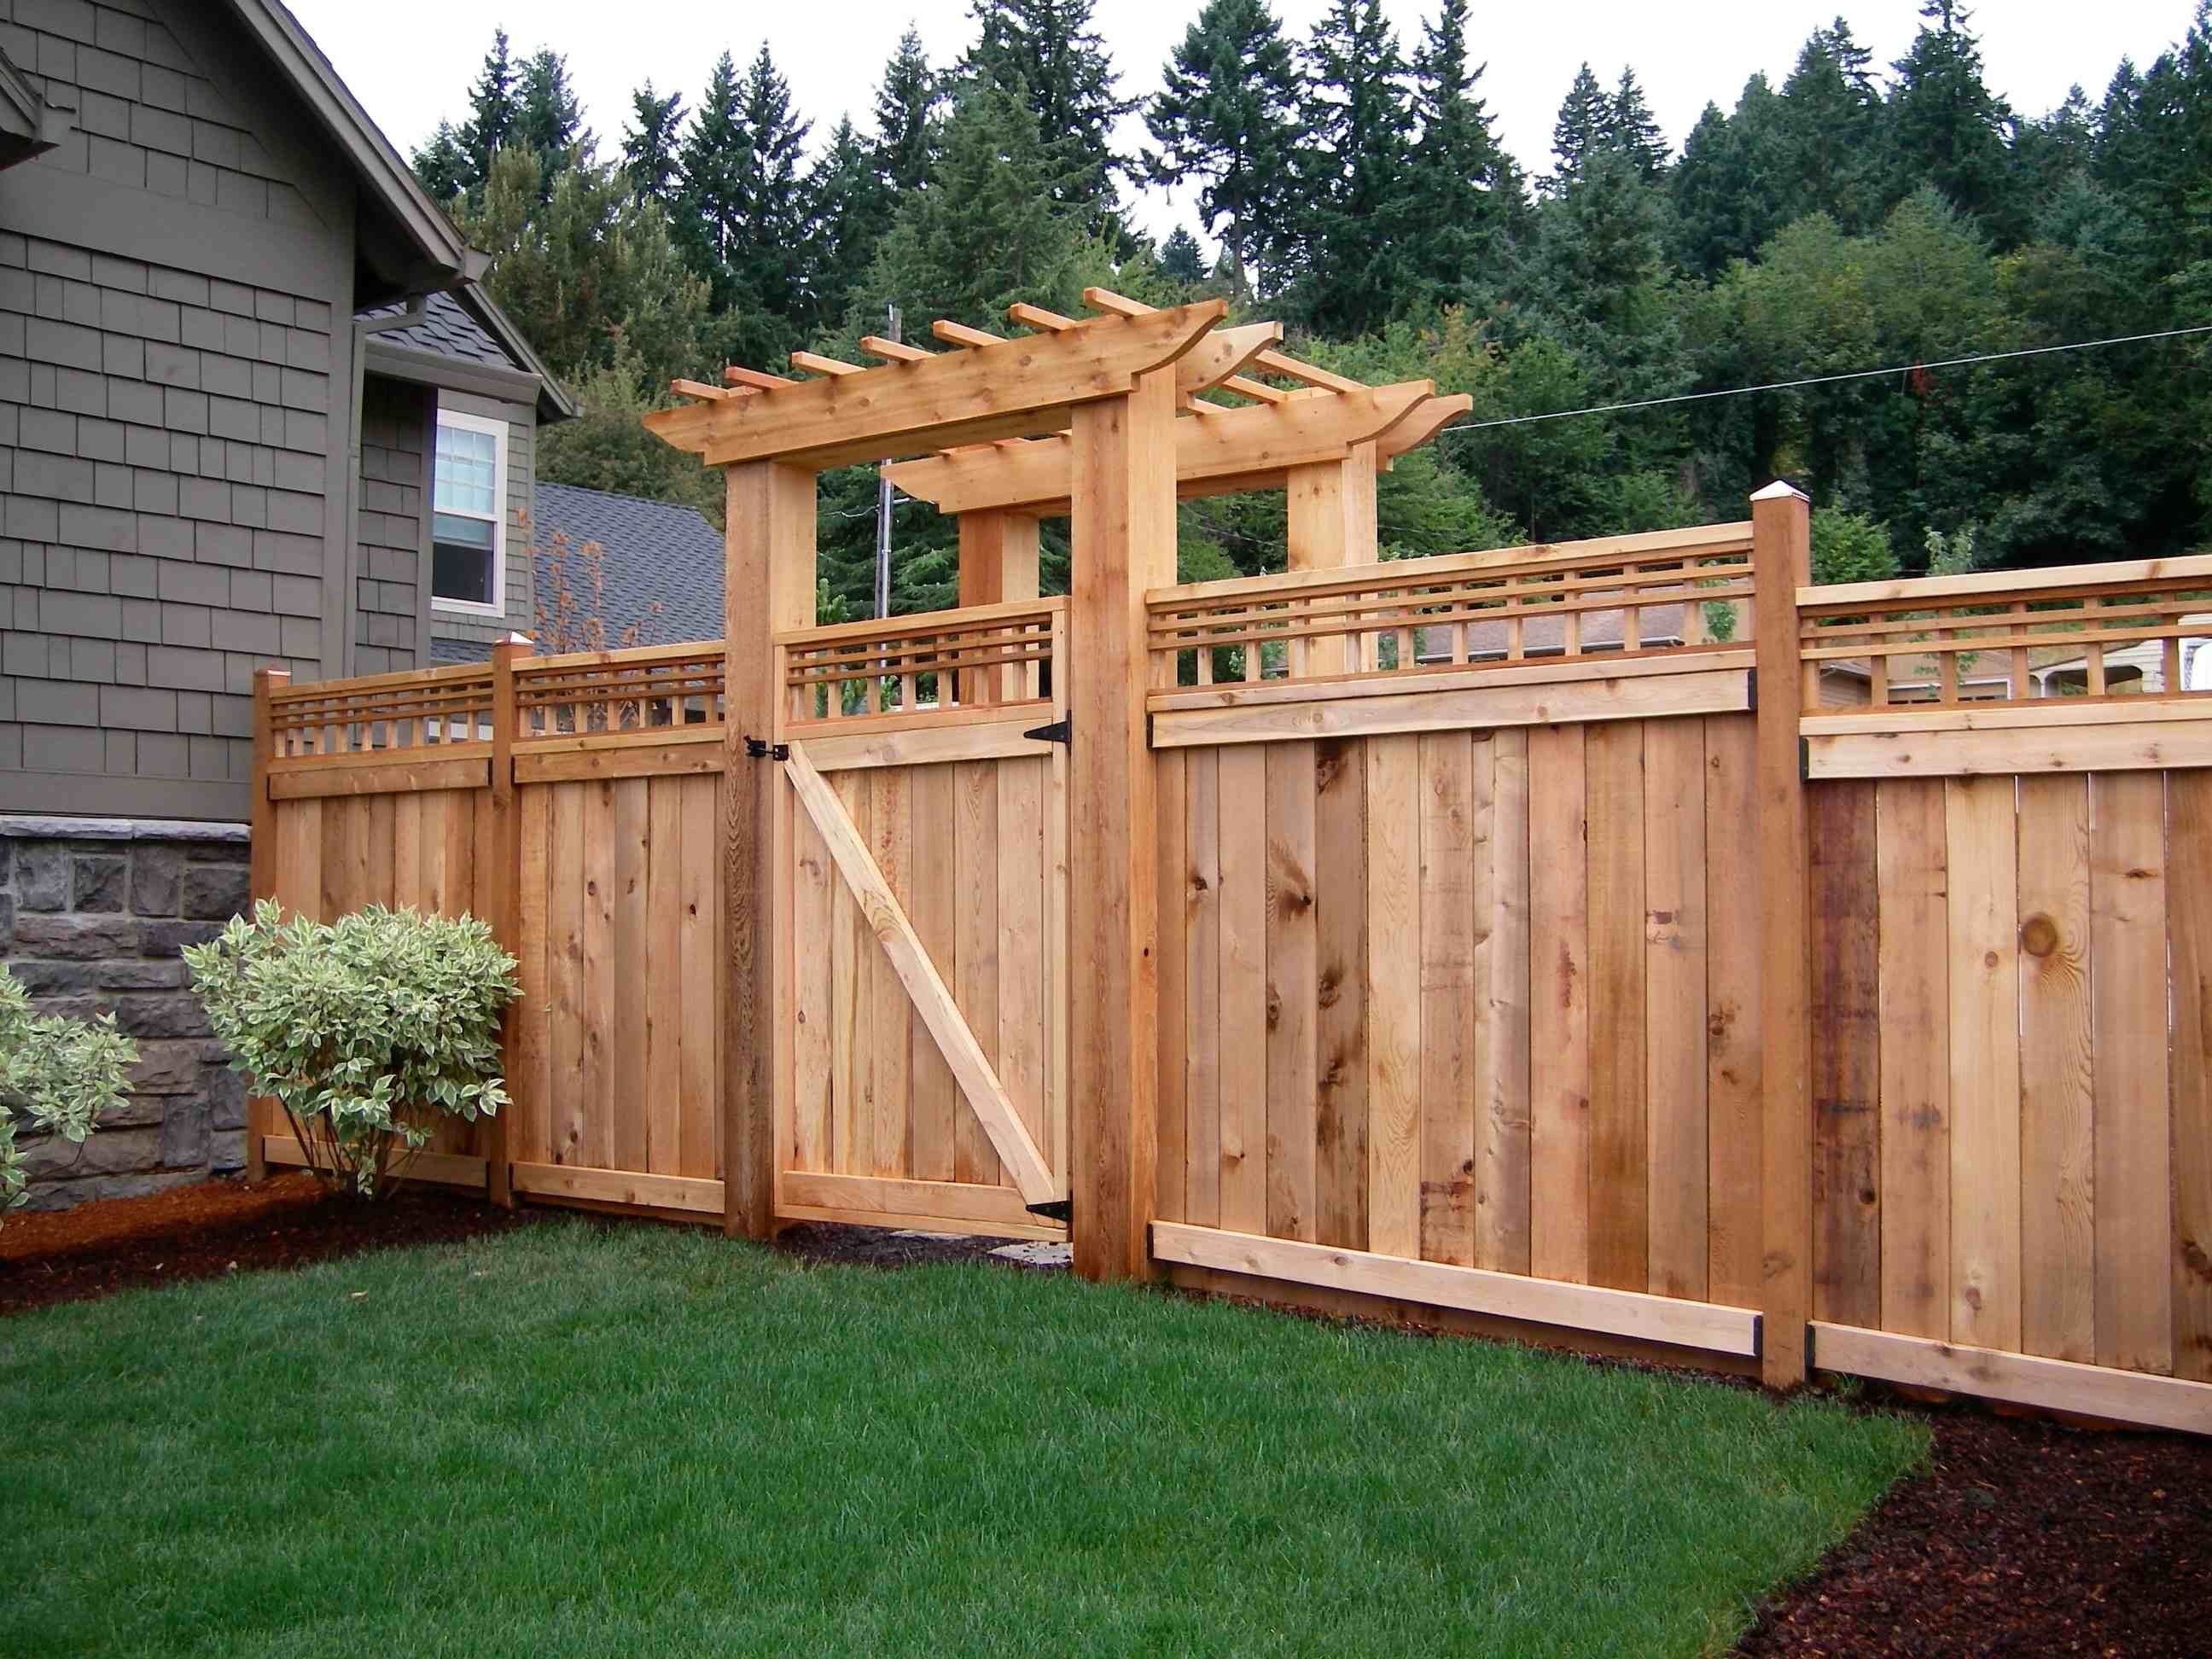 Building a wooden fence backyard pinterest wood fences on the fence 7 top options in fencing materials baanklon Choice Image